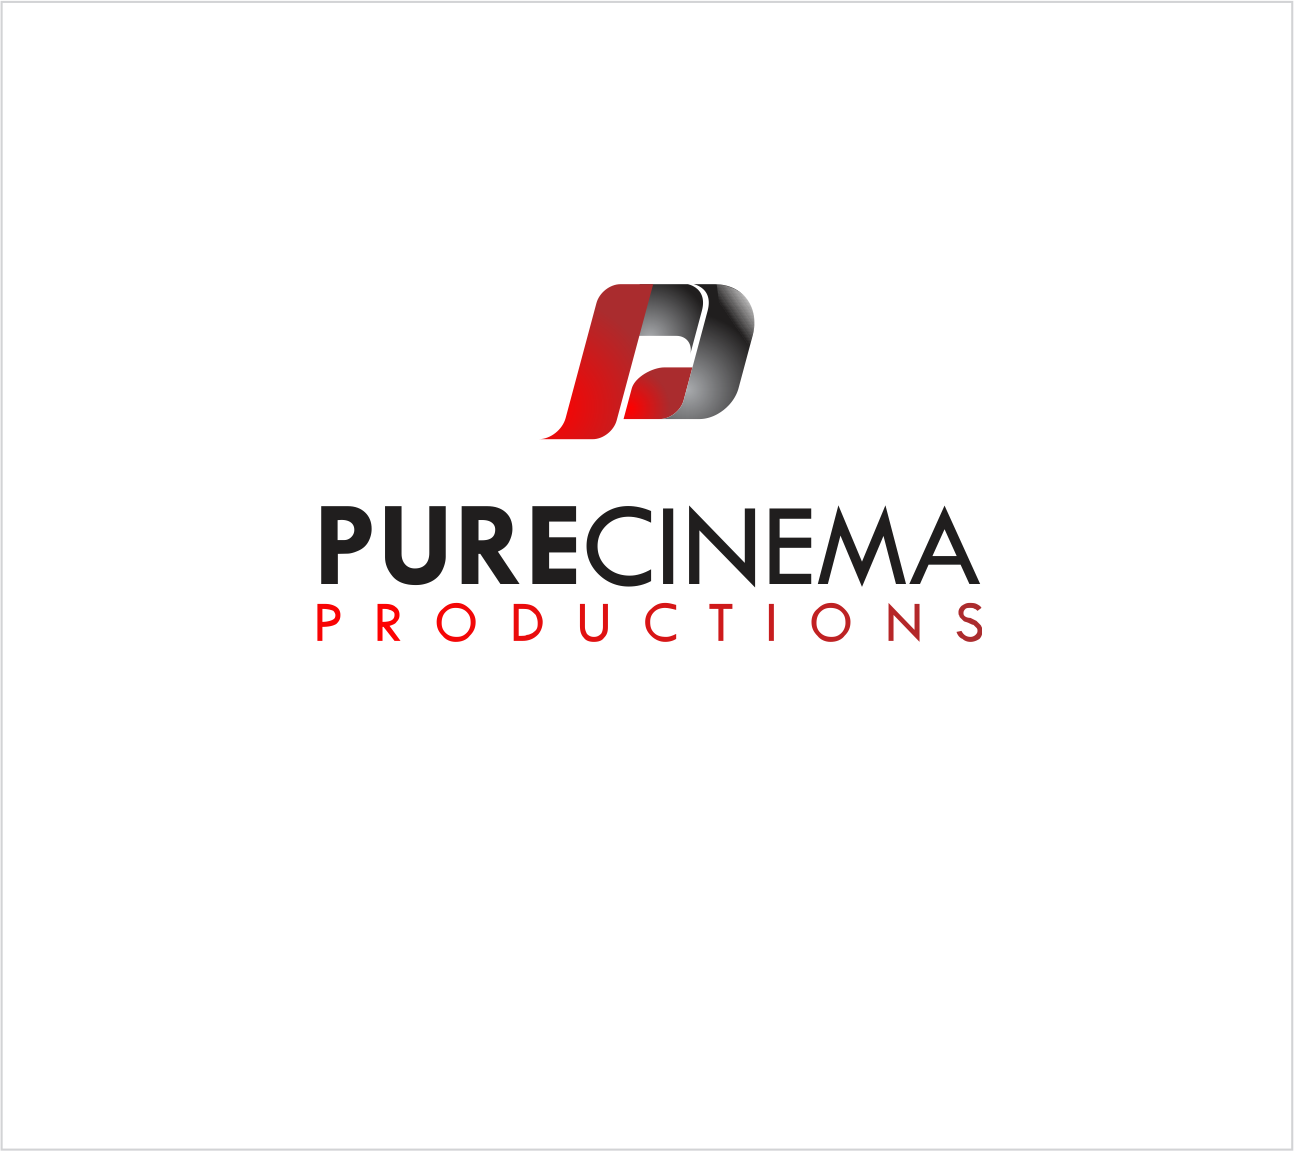 Logo Design by Armada Jamaluddin - Entry No. 24 in the Logo Design Contest Imaginative Logo Design for Pure Cinema.